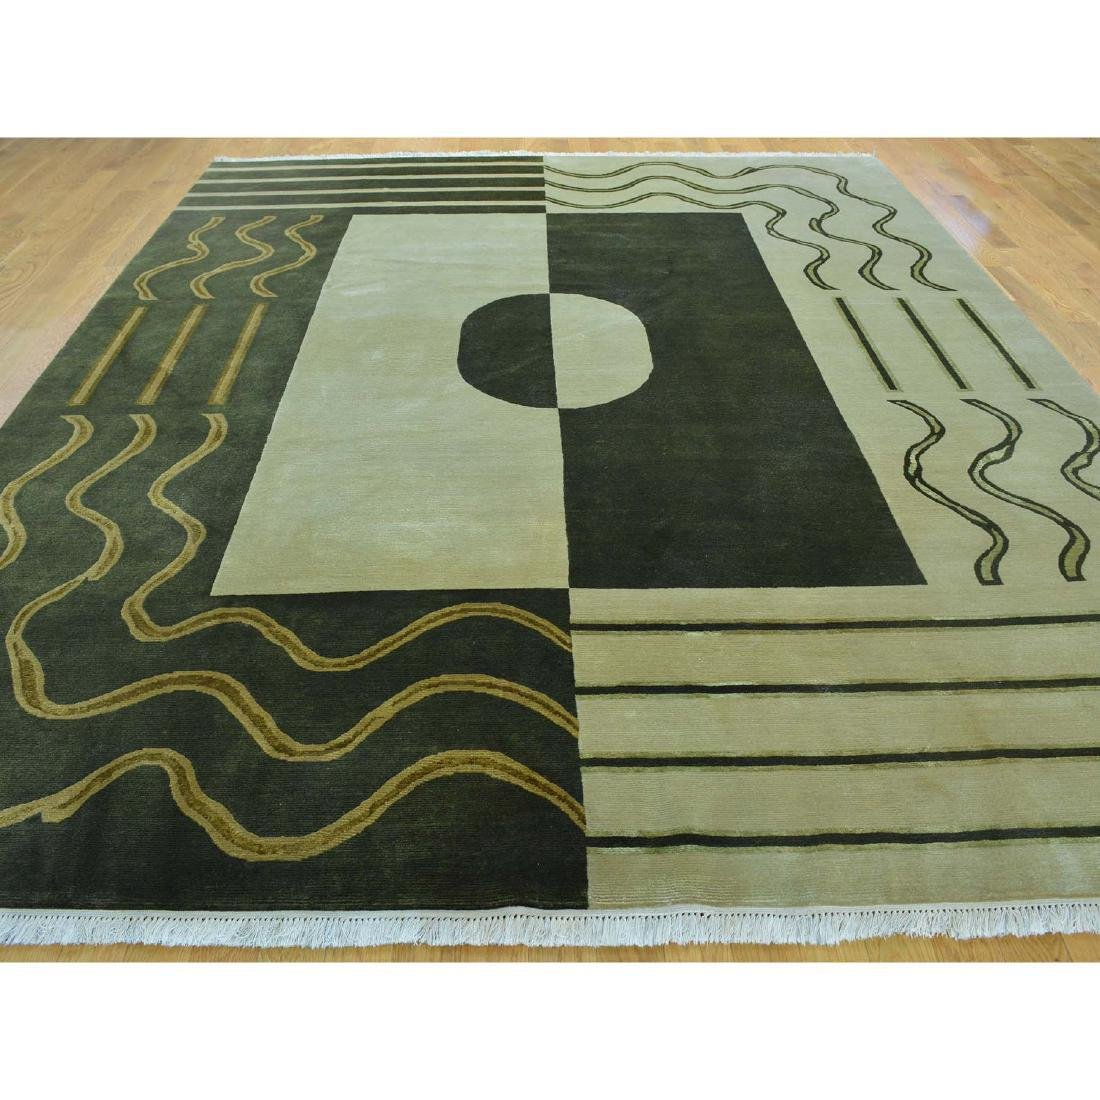 Hand Knotted Wool and Silk Modern Nepali Rug 8.1x9.10 - 2